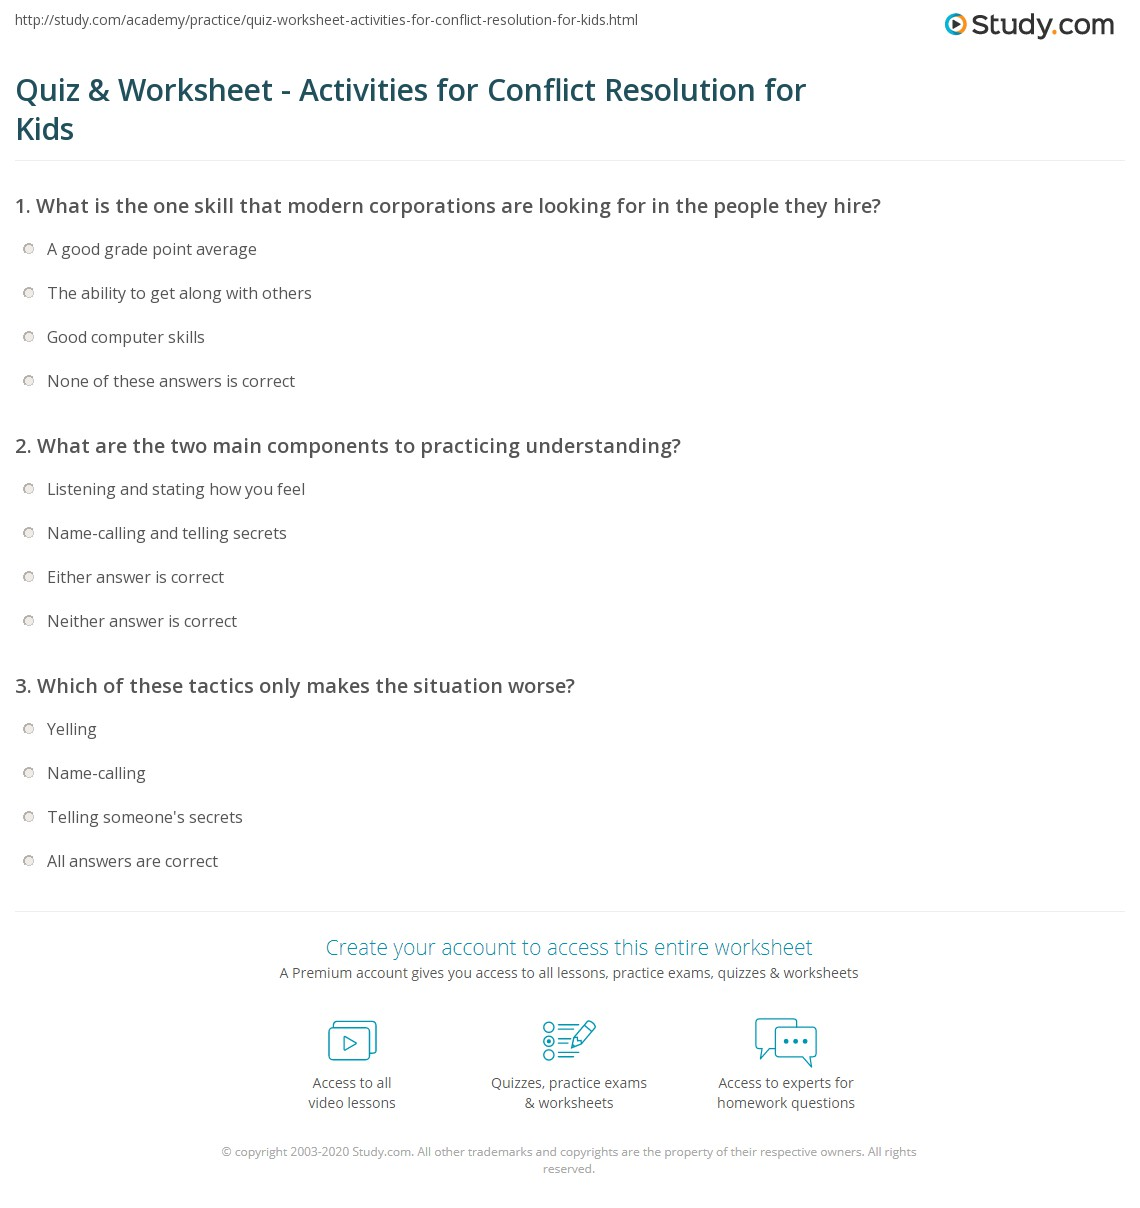 Worksheet Conflict Resolution Worksheets quiz worksheet activities for conflict resolution kids print worksheet